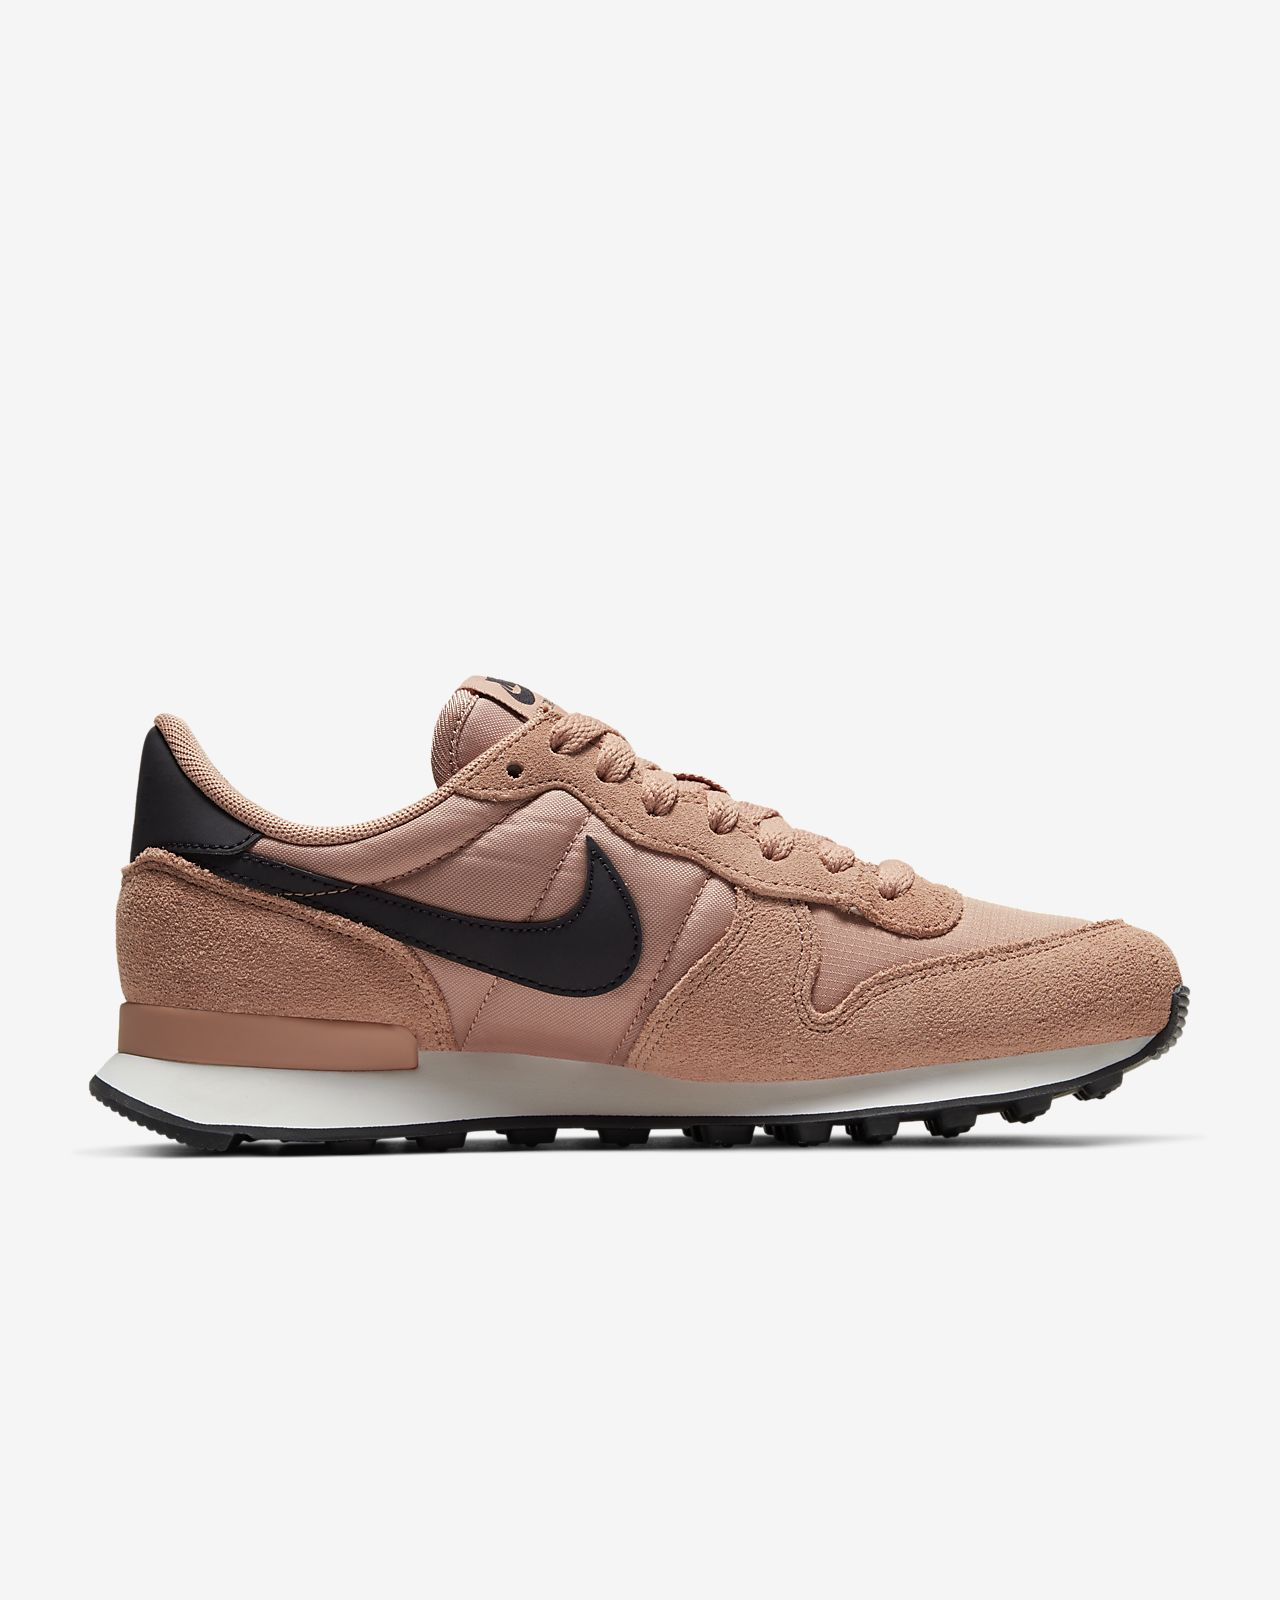 online store bde86 575c3 Low Resolution Scarpa Nike Internationalist - Donna Scarpa Nike  Internationalist - Donna